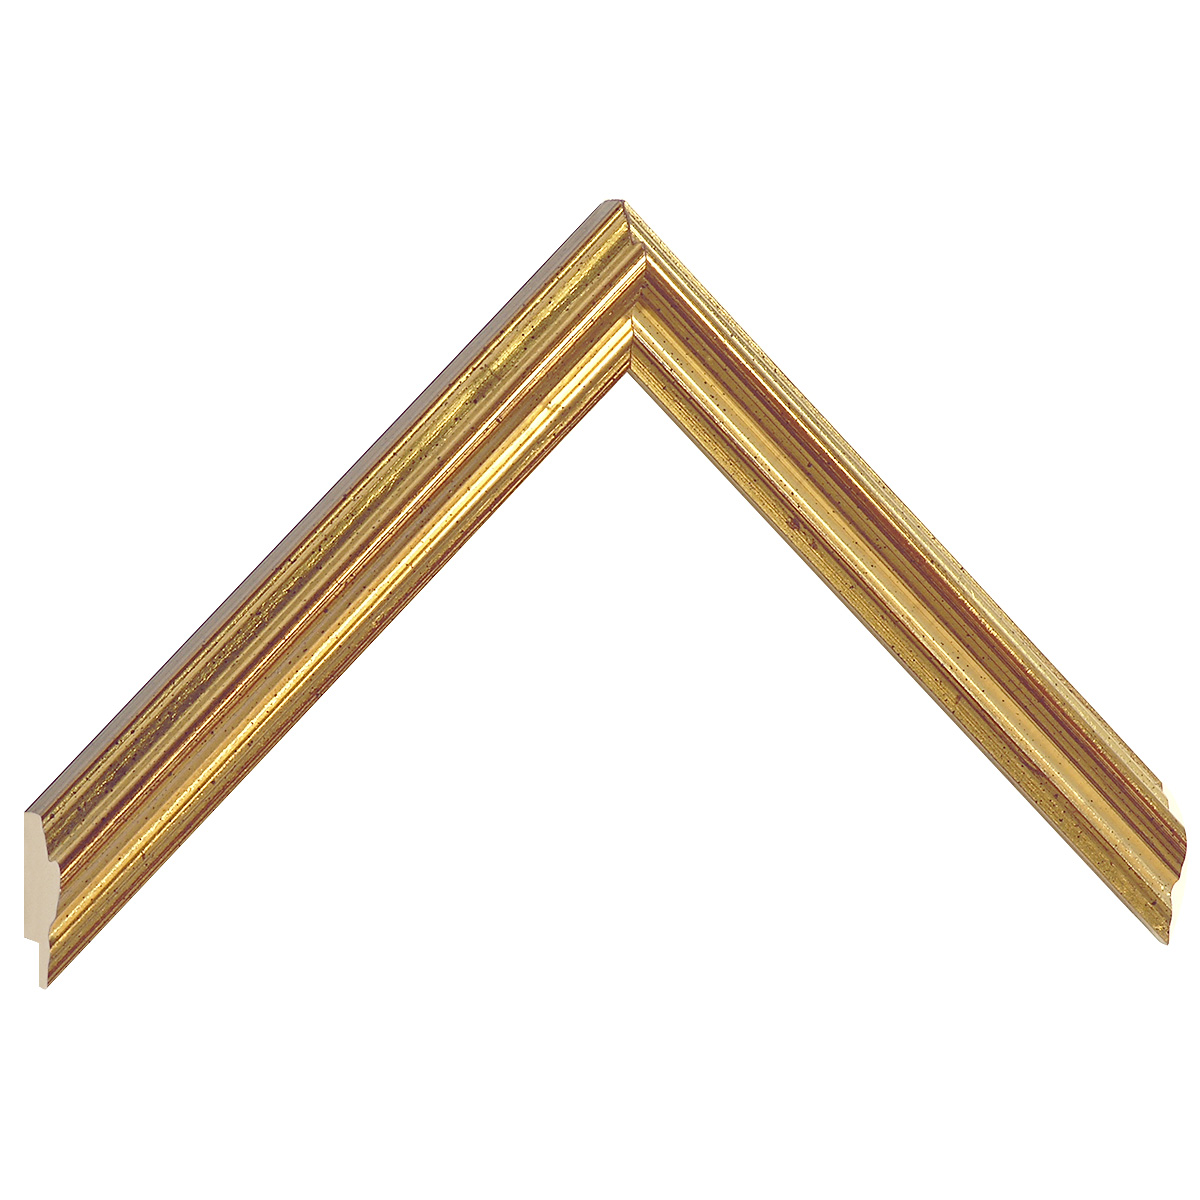 Moulding ayous 22mm - antique gold